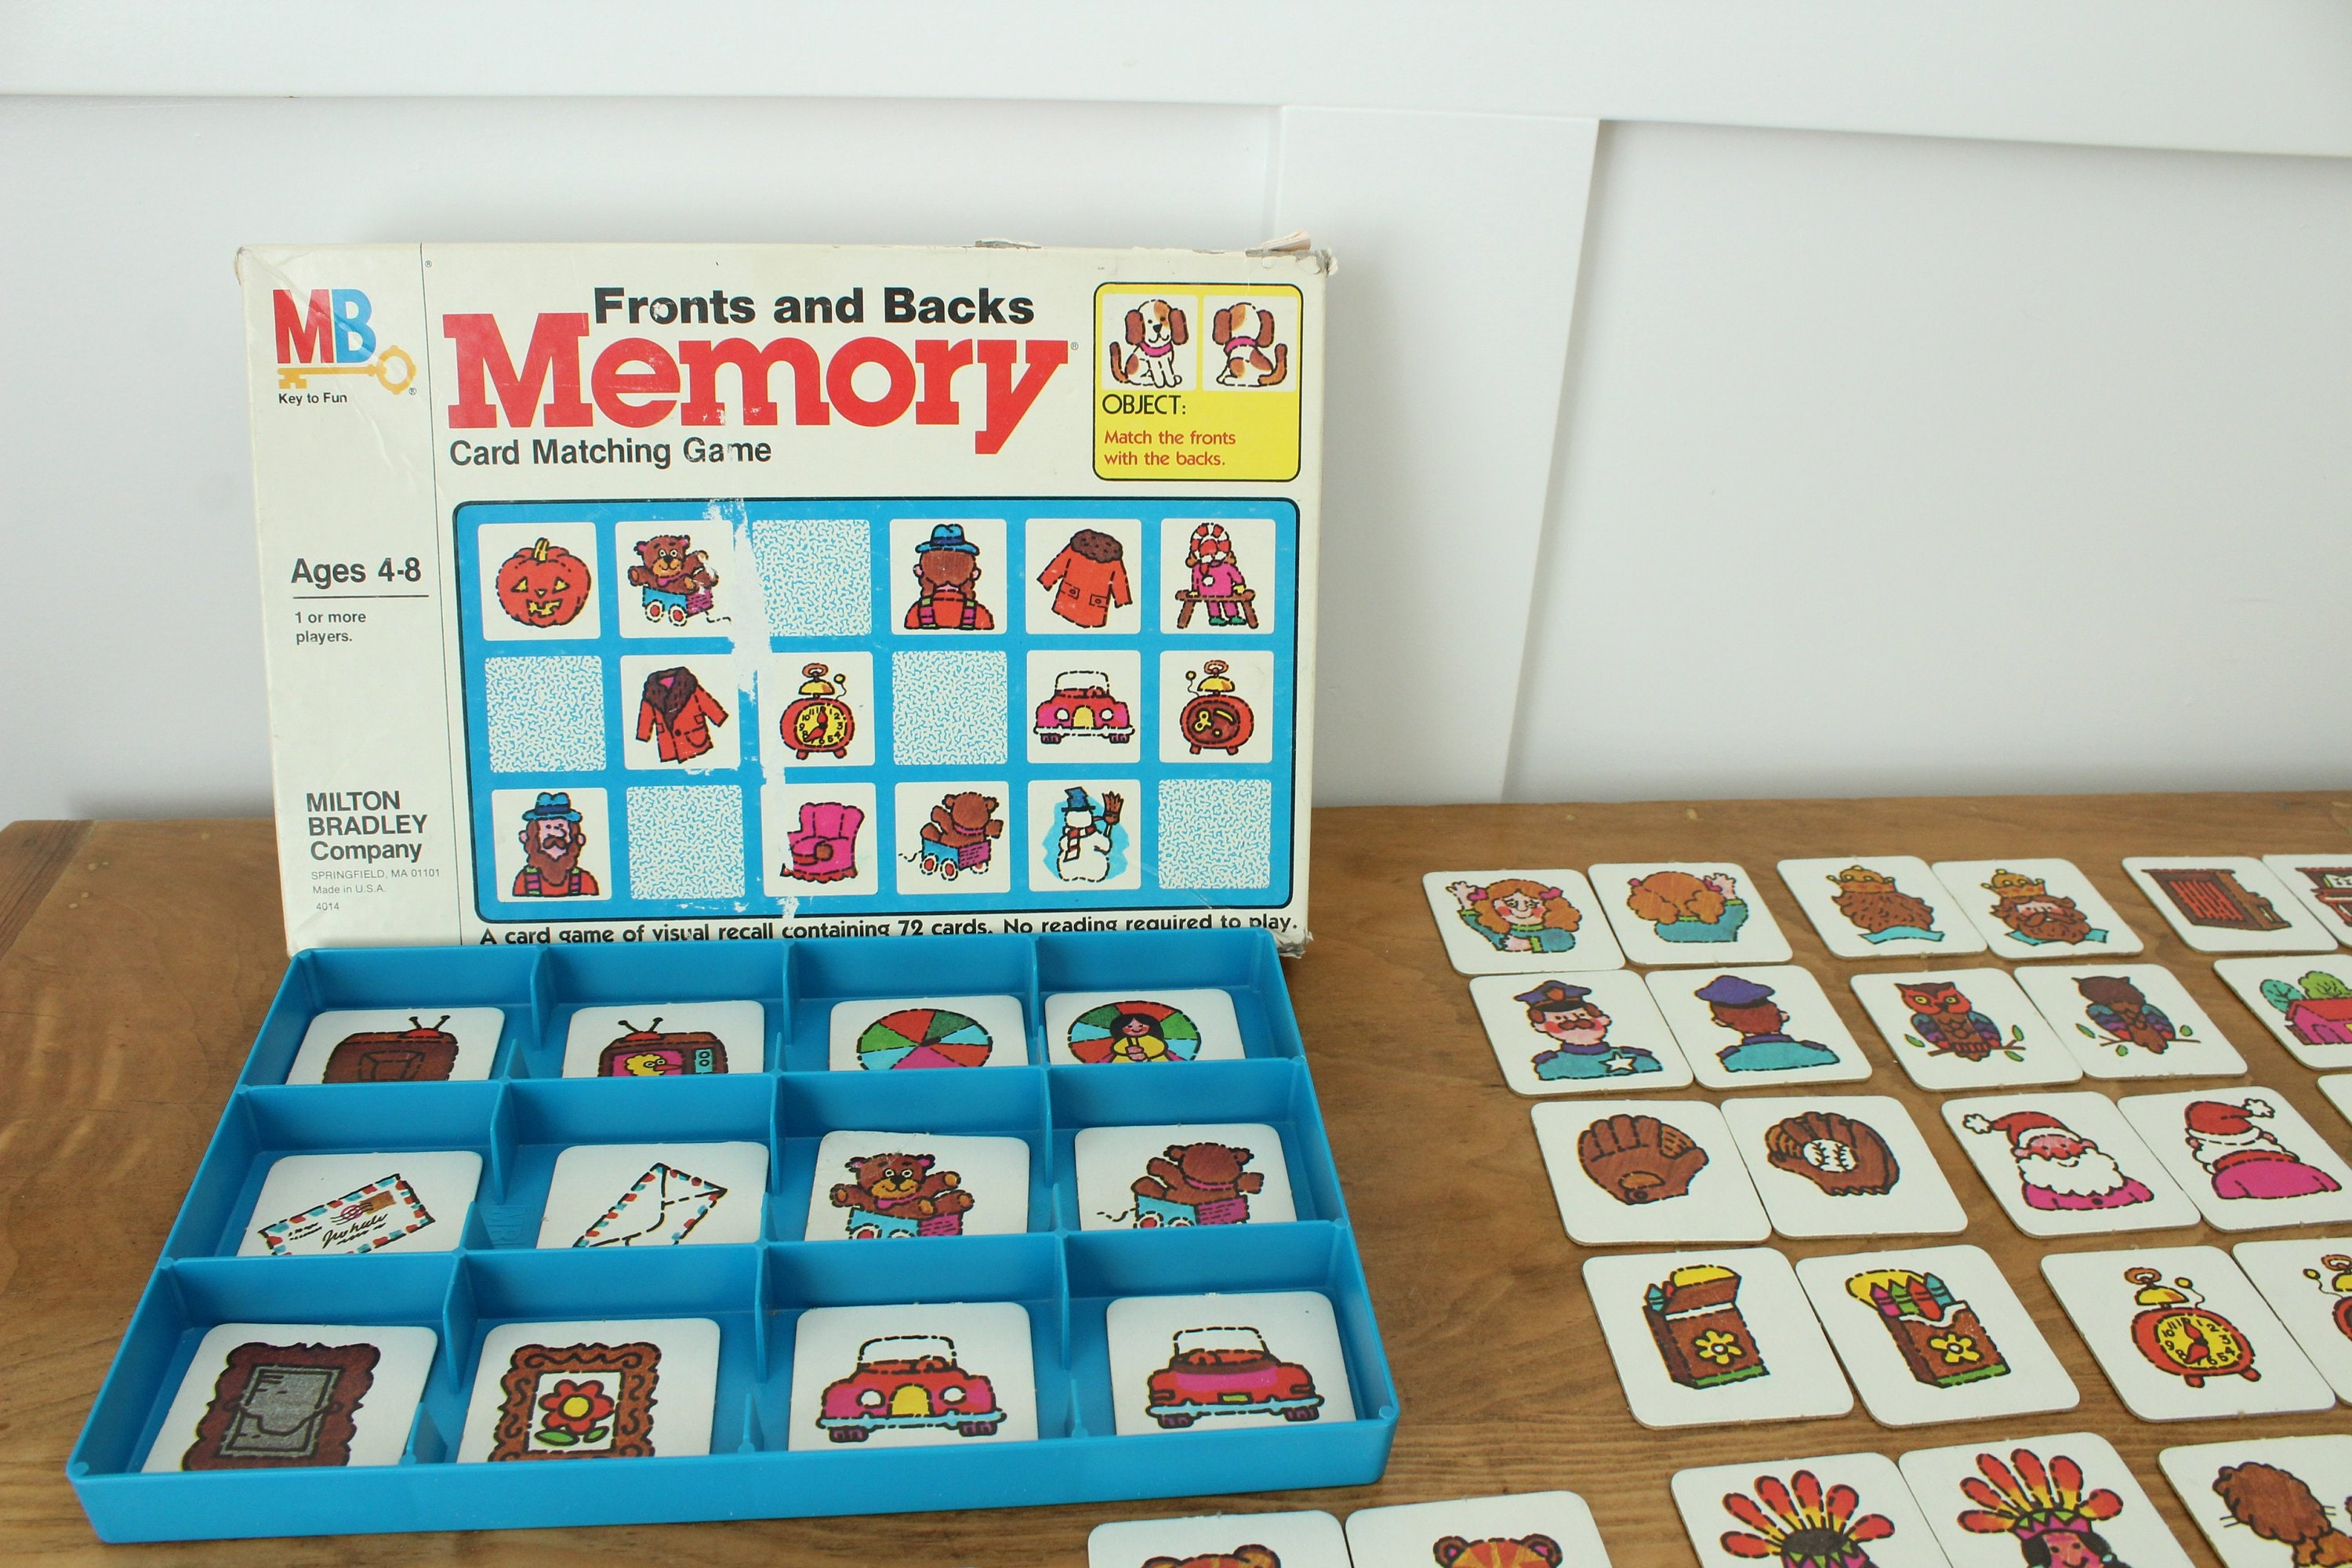 Fronts and Backs Memory Game, Complete, Milton Bradley 1980, Matching Game,  Children's Learning Game